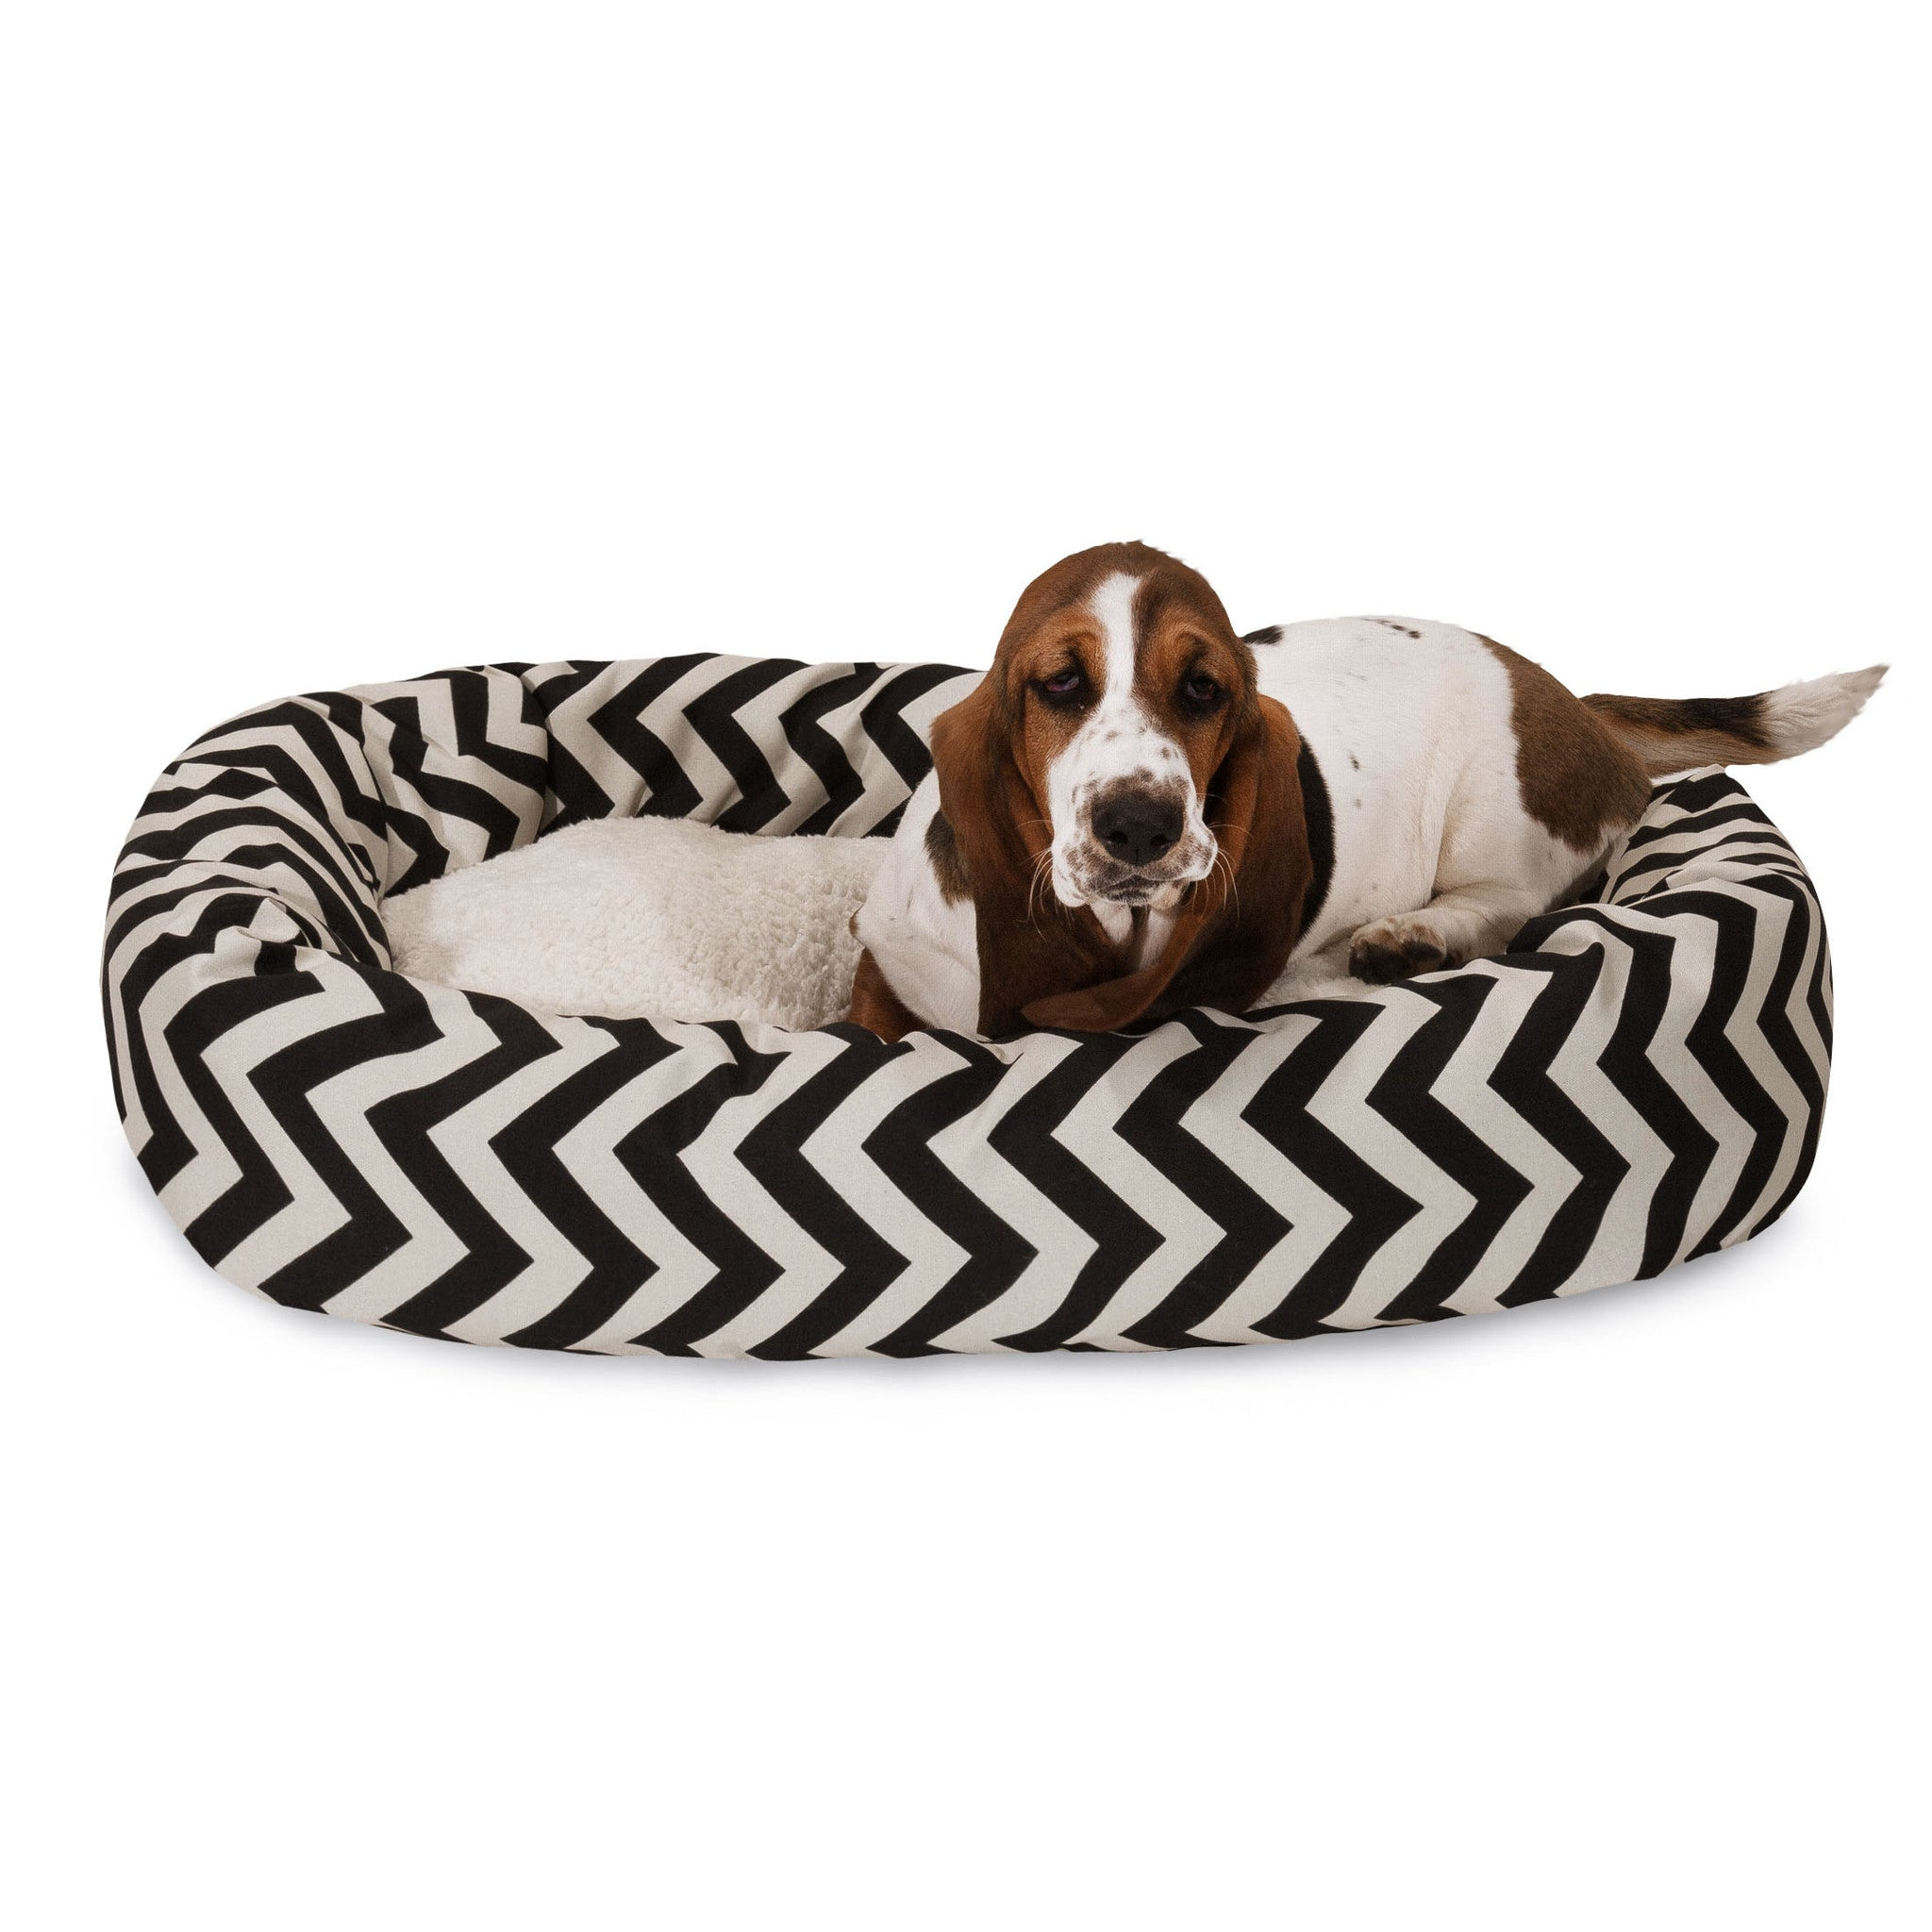 buy steps an to beds dog pictures with bed orthopedic how step